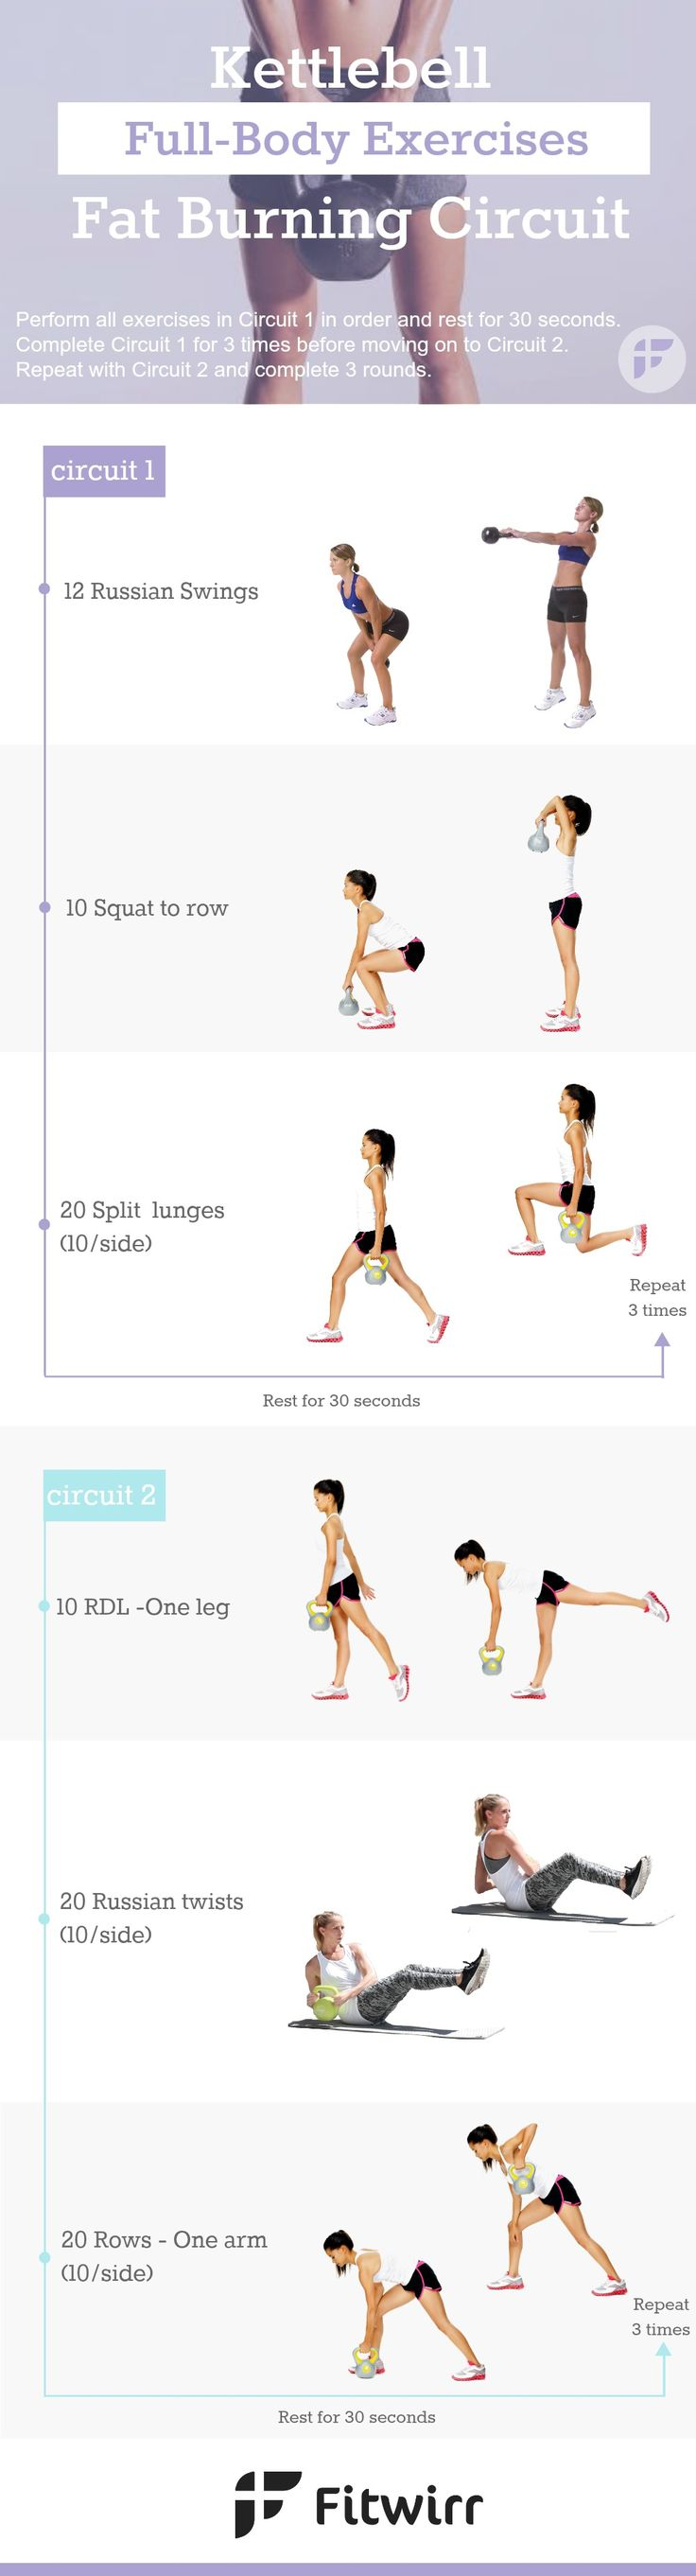 Full-Body Kettlebell Workout Routines